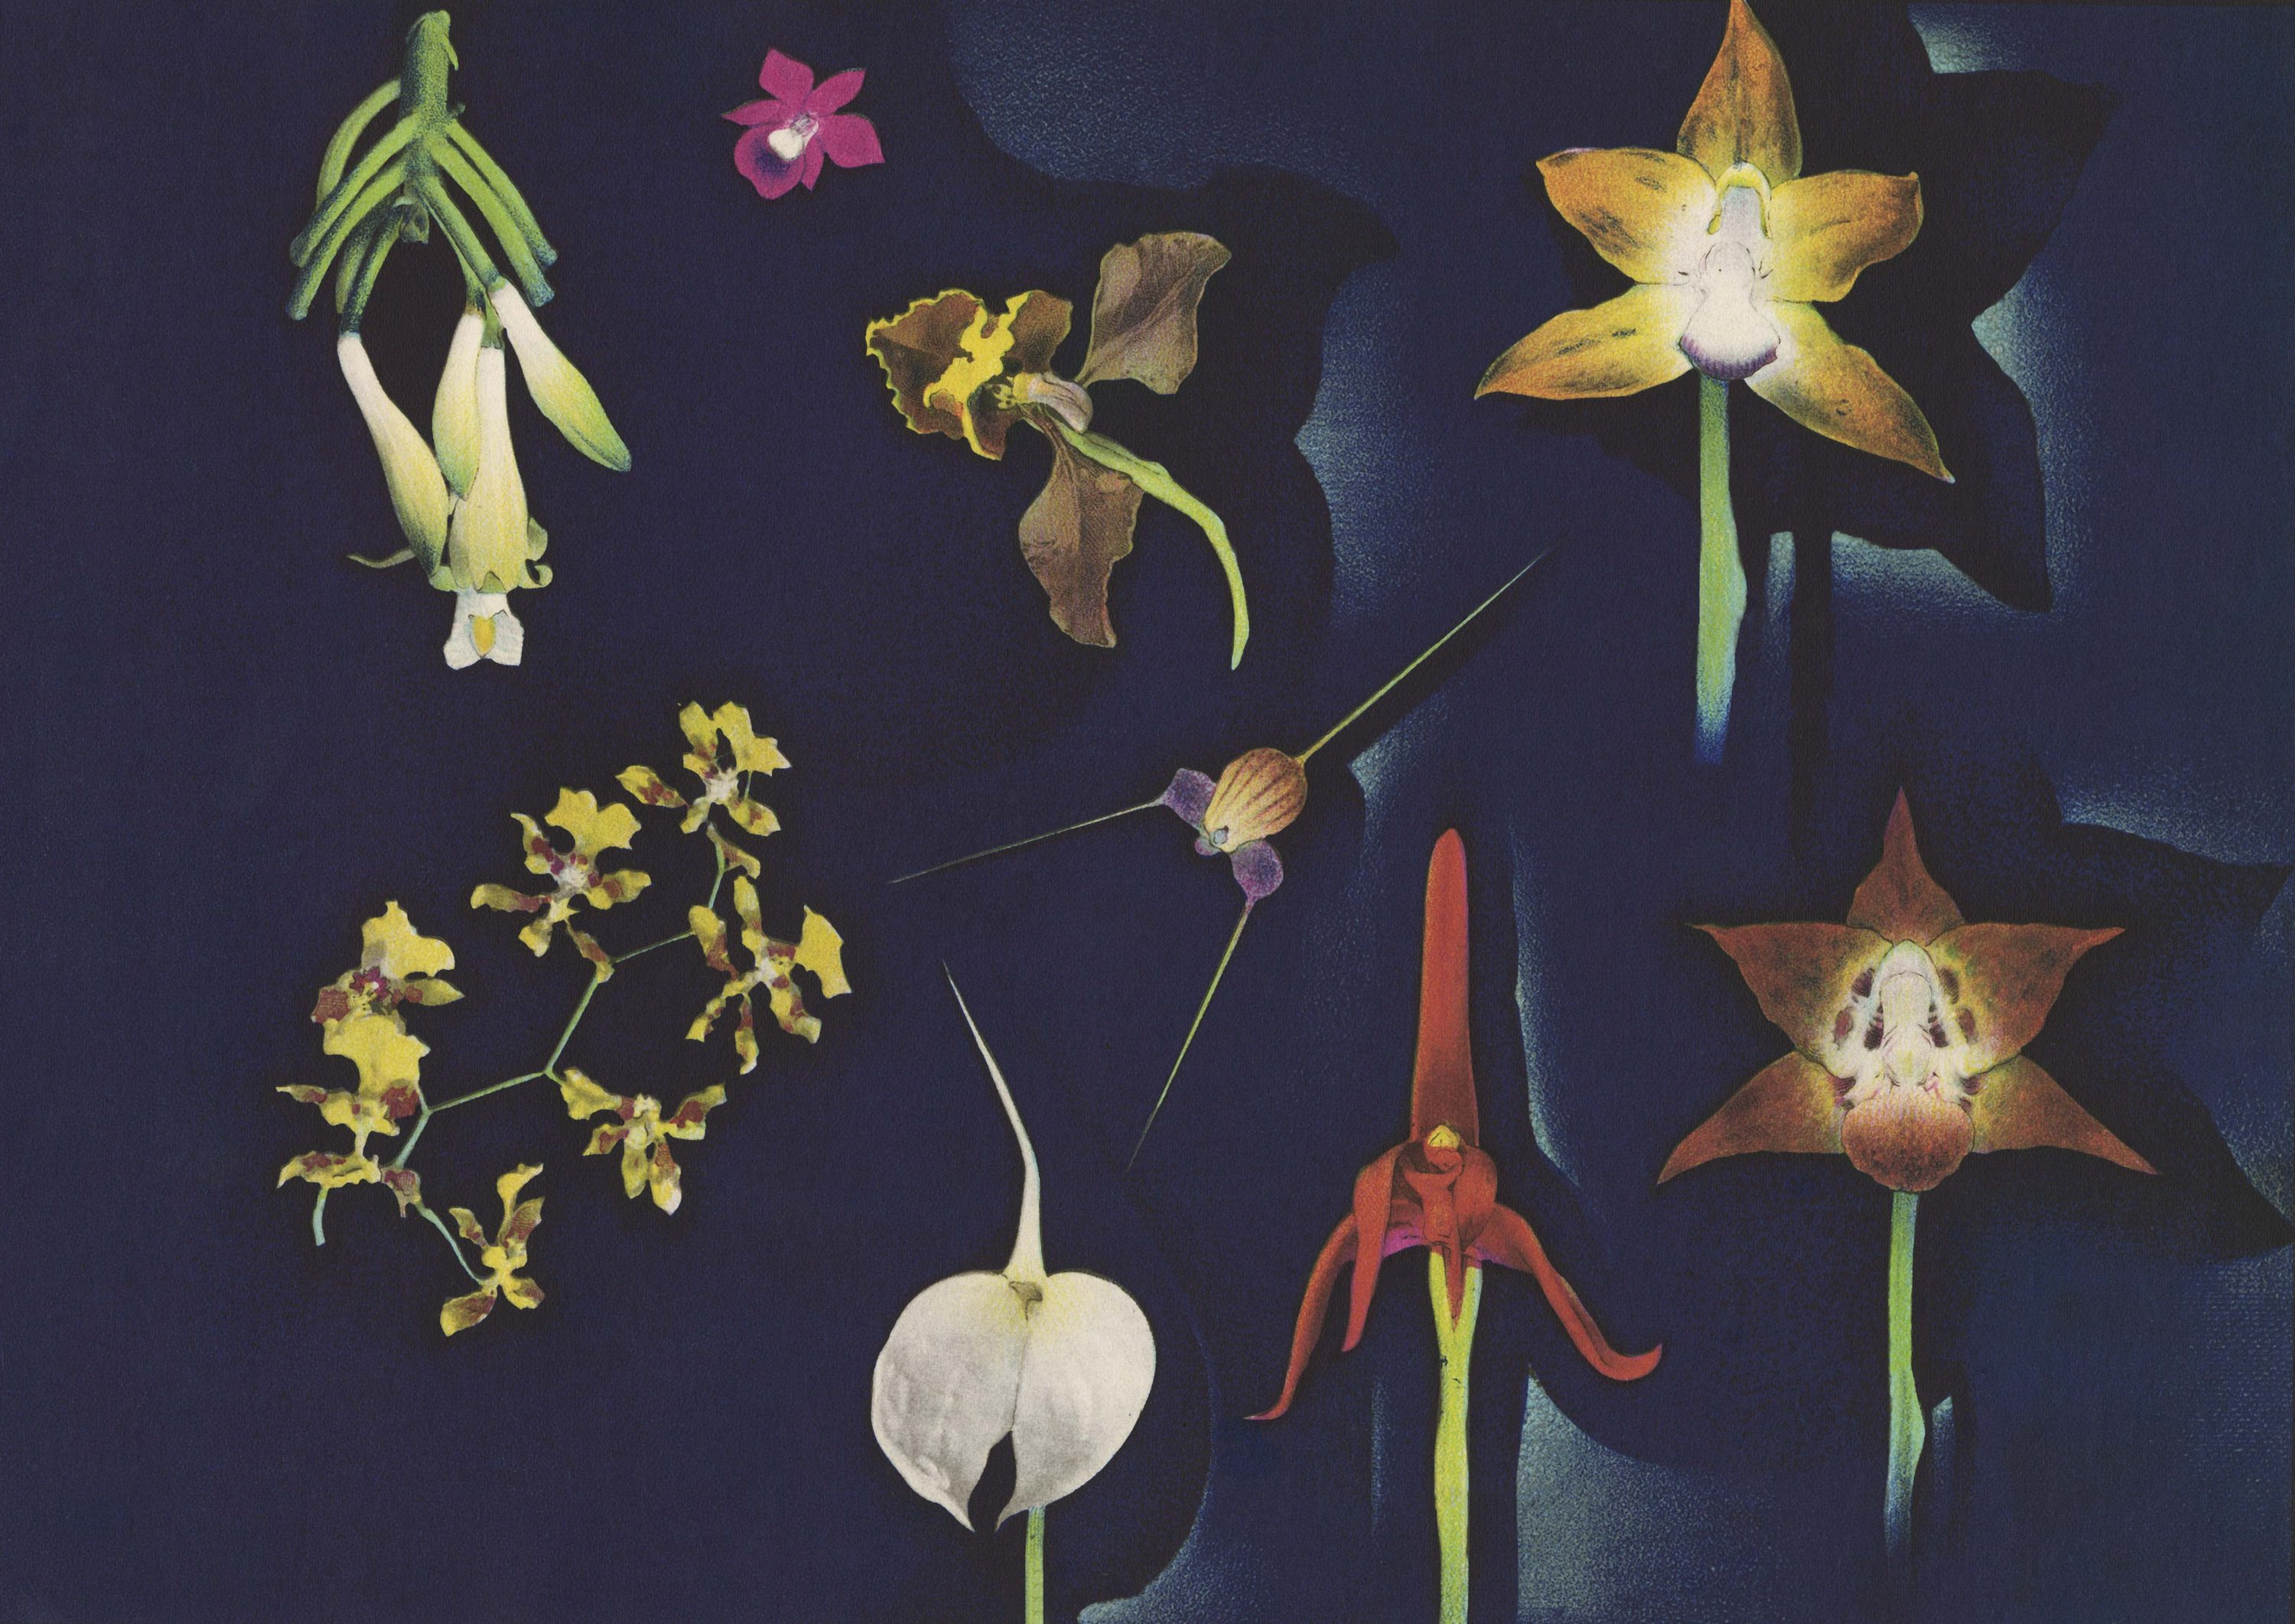 Colombian Orchids by Luis F. Osorio, 1941. Copyright free*